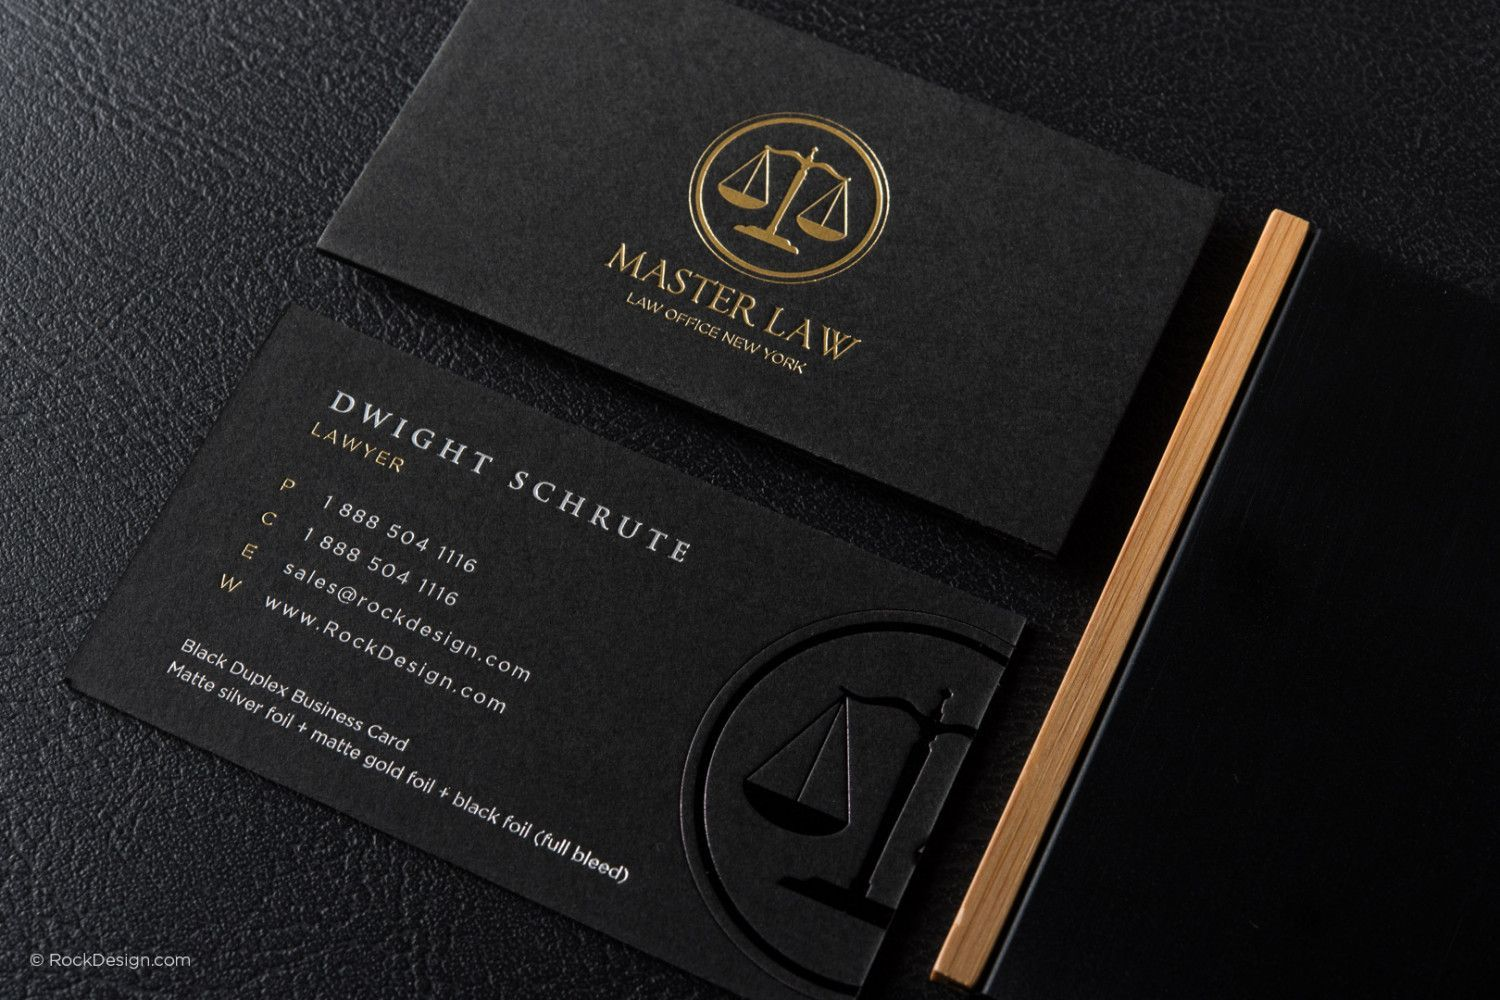 028 Template Ideas Office Business Card Phenomenal Ms With Regard To Office Max Business Card T Lawyer Business Card Gold Business Card Attorney Business Cards